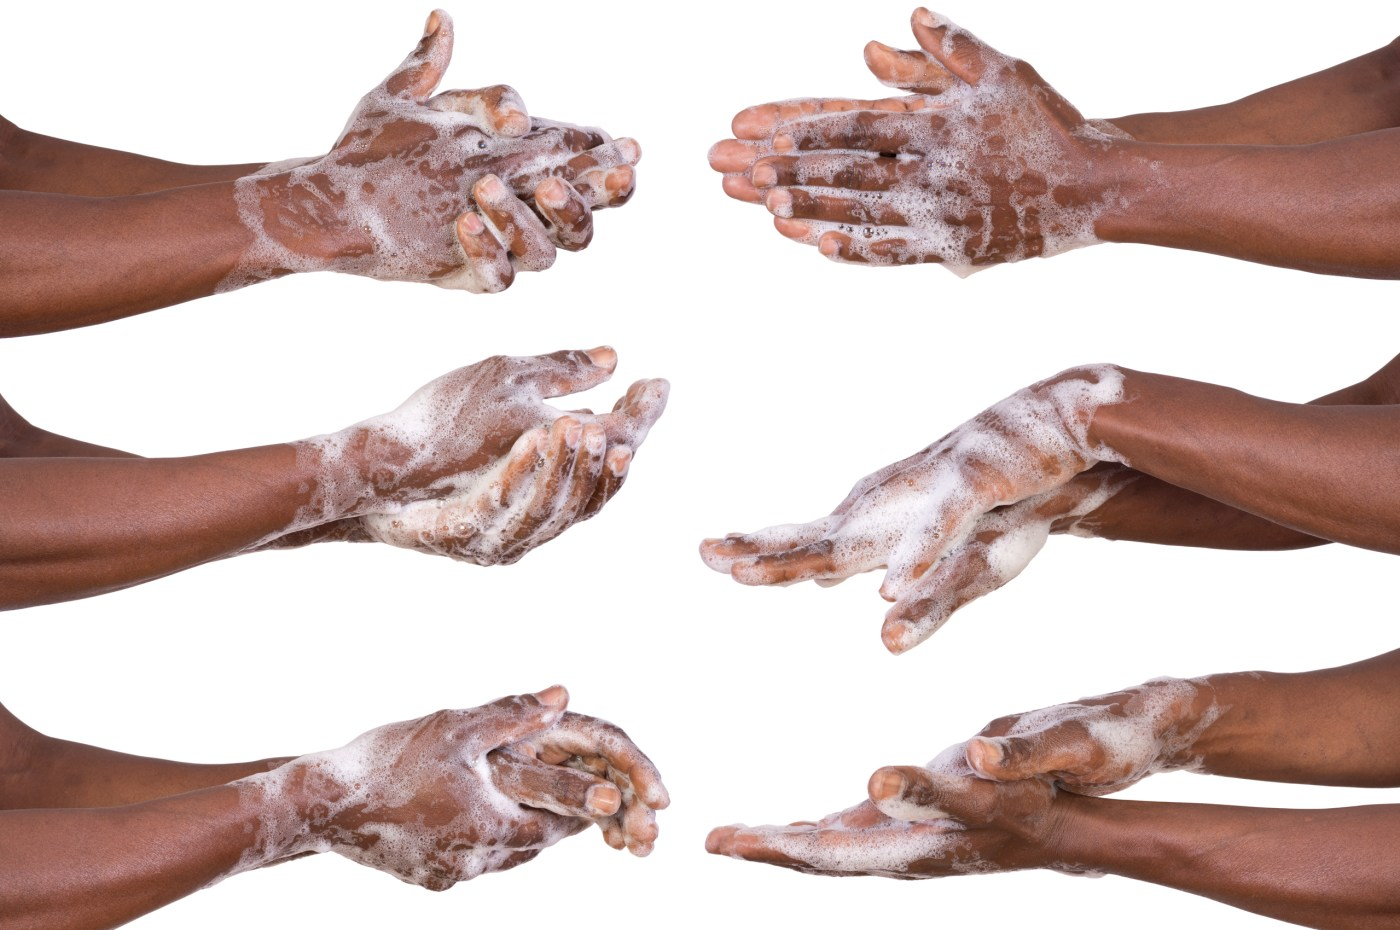 Black hands and forearms on a white background. Image shows the steps of proper handwashing moving vertically from top to bottom, three steps on the left and three steps on the right side of the image.